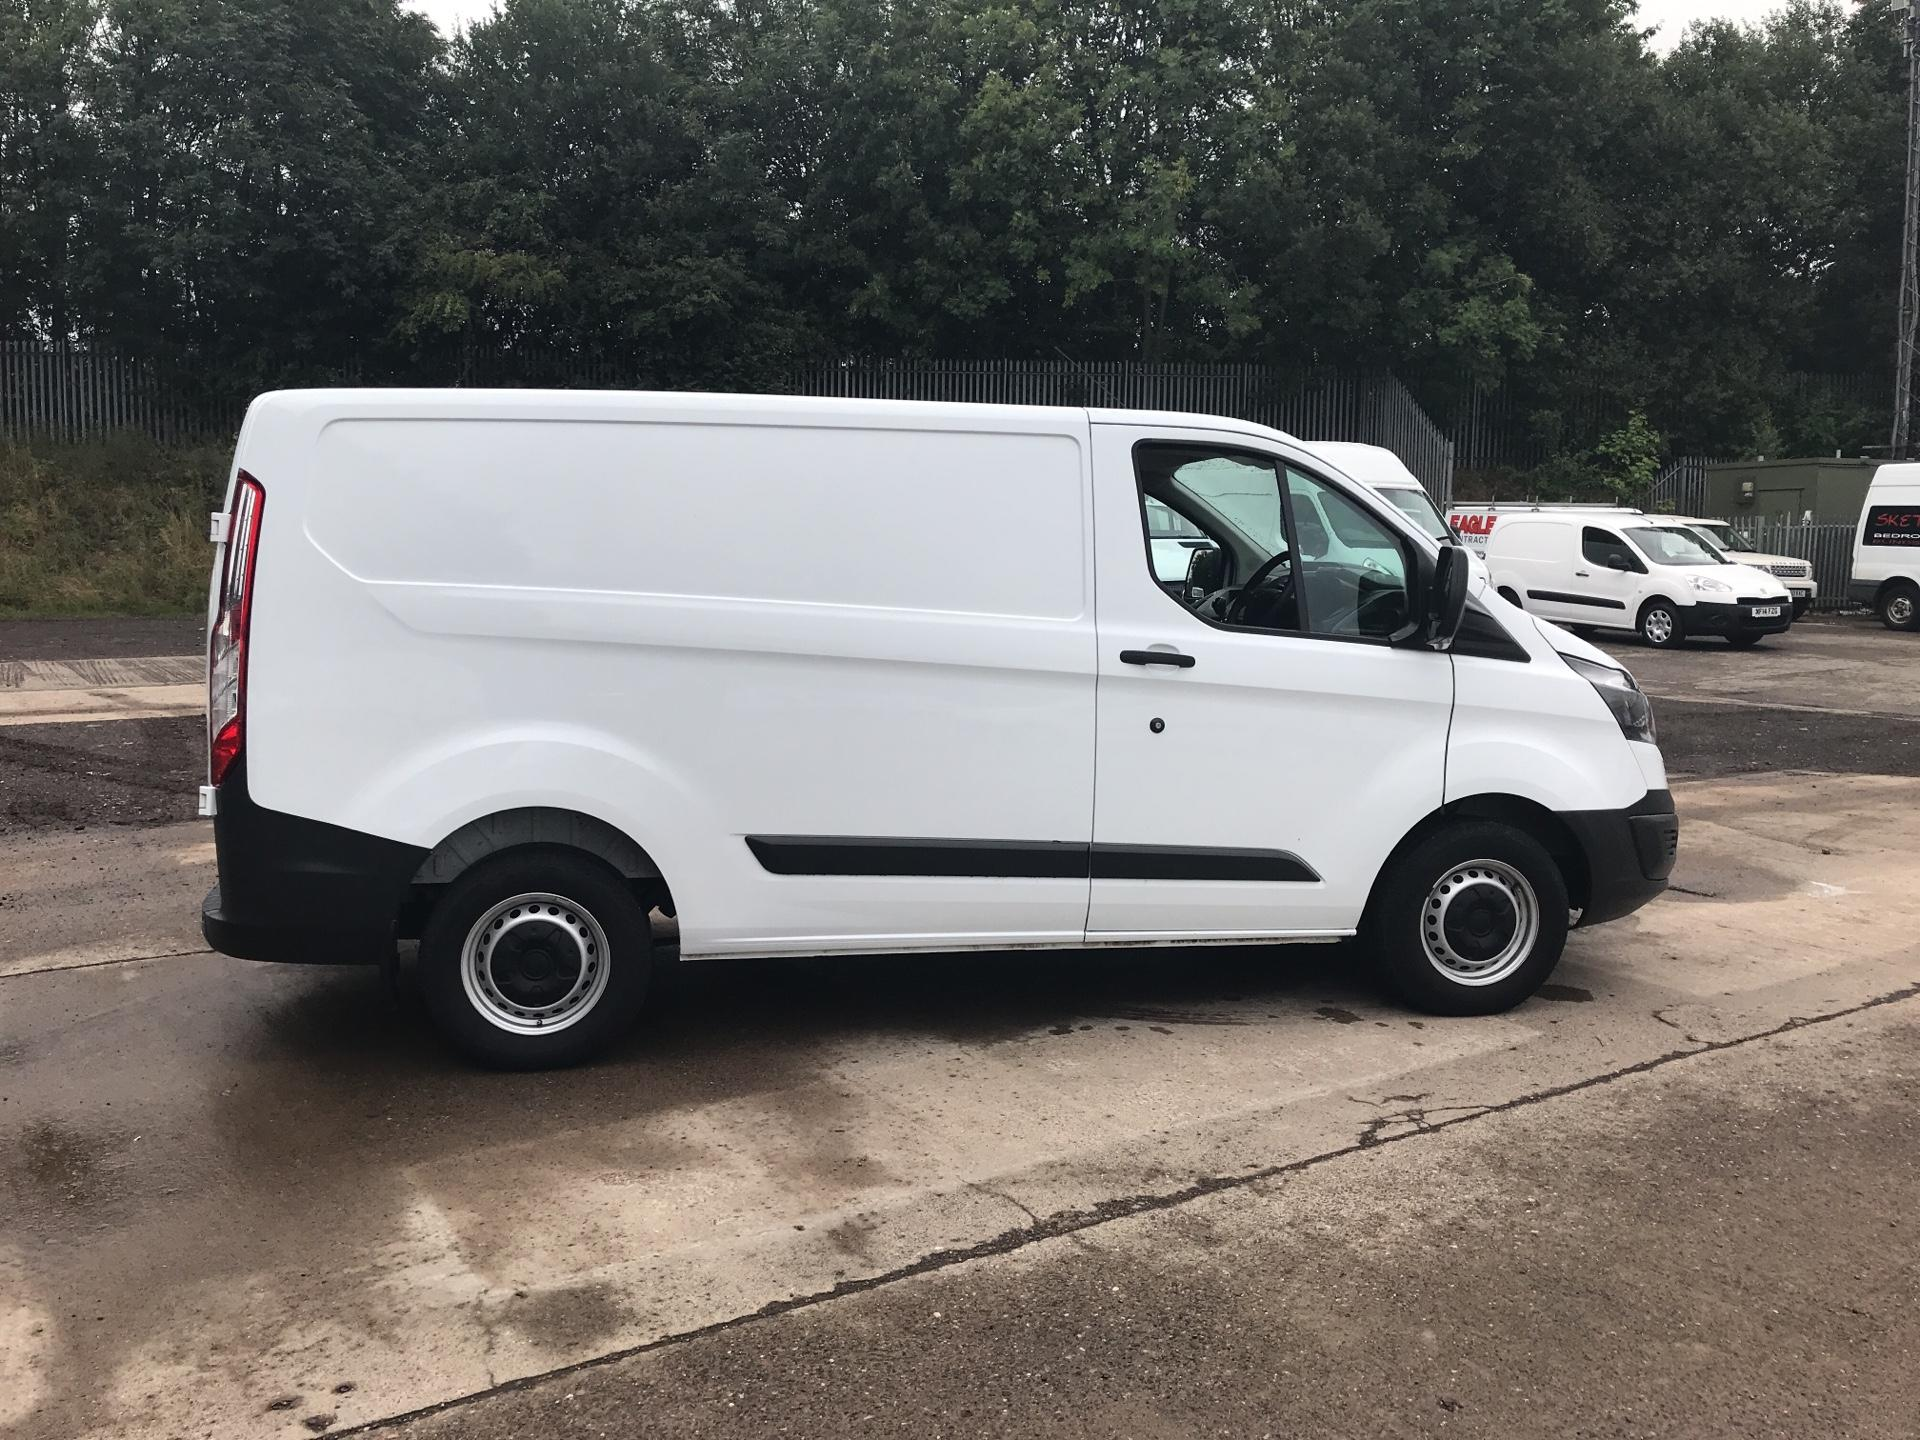 2017 Ford Transit Custom 270 L1 DIESEL FWD 2.2 TDCI 105PS LOW ROOF VAN EURO 5 (SK17ZYG) Thumbnail 2